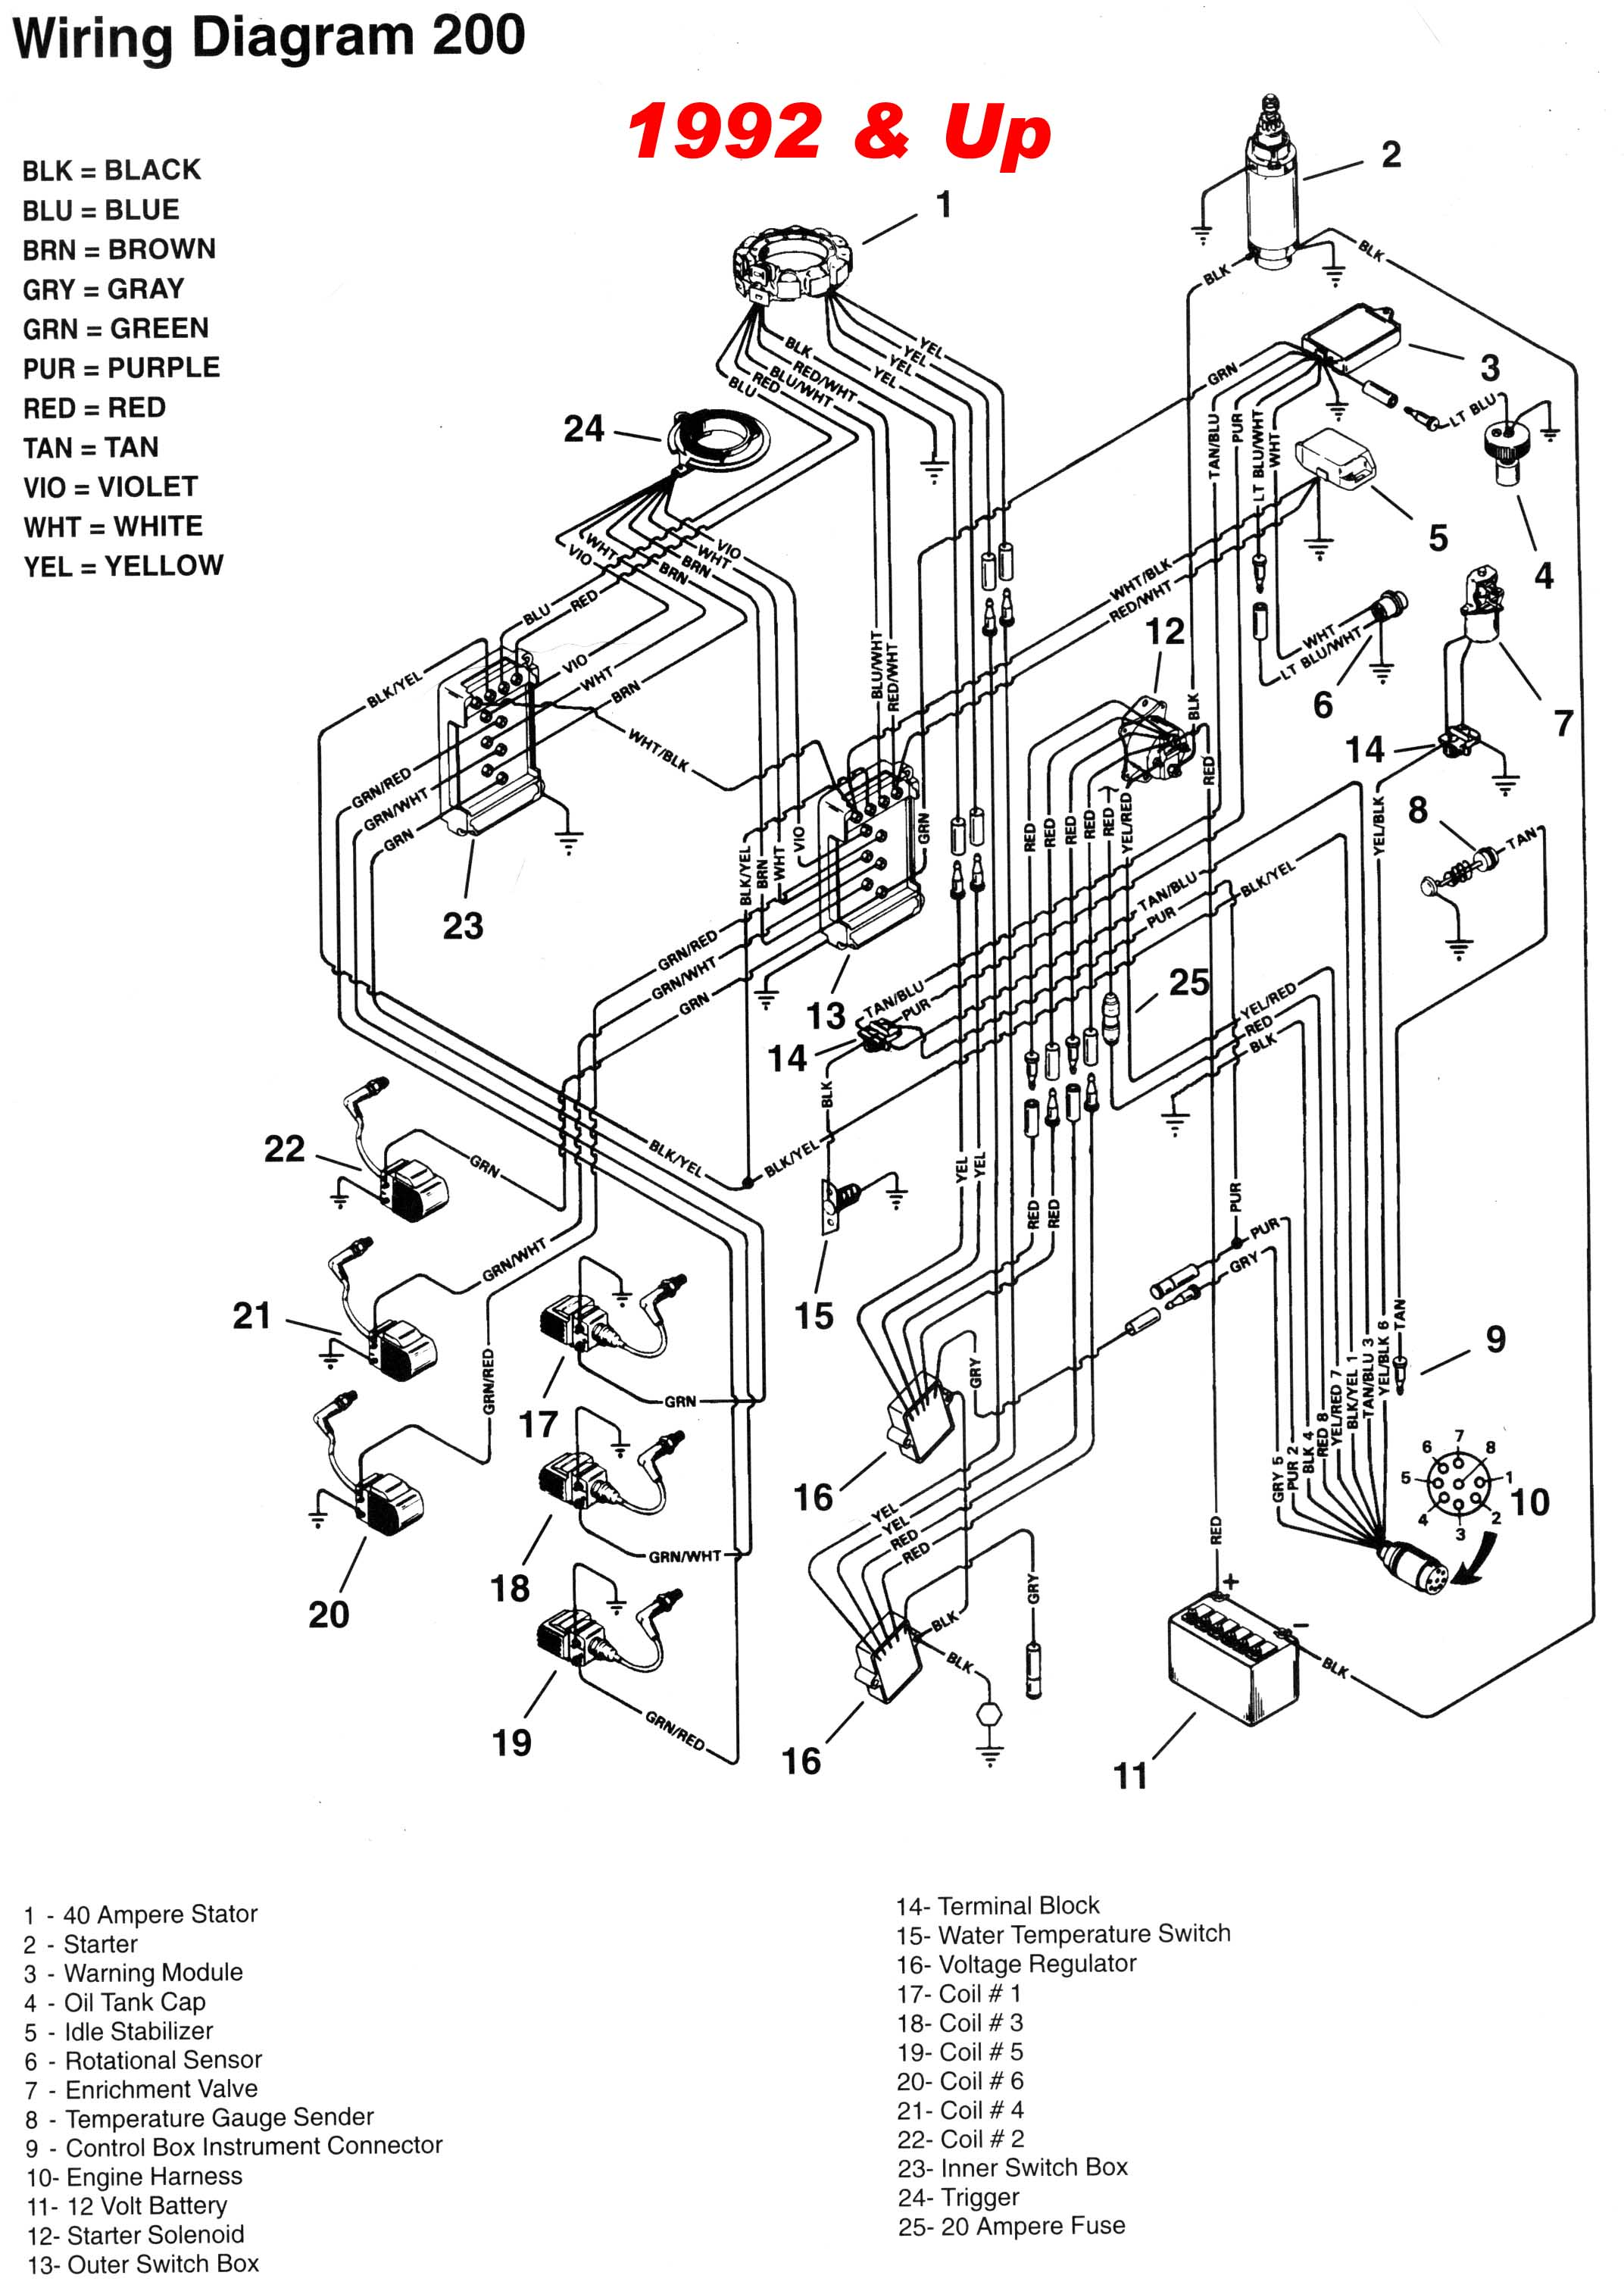 mercury_92up_200_wiring mercury outboard 2 5 and 3 0l v6 and gearcase faq Yamaha Outboard Wiring Diagram at bakdesigns.co